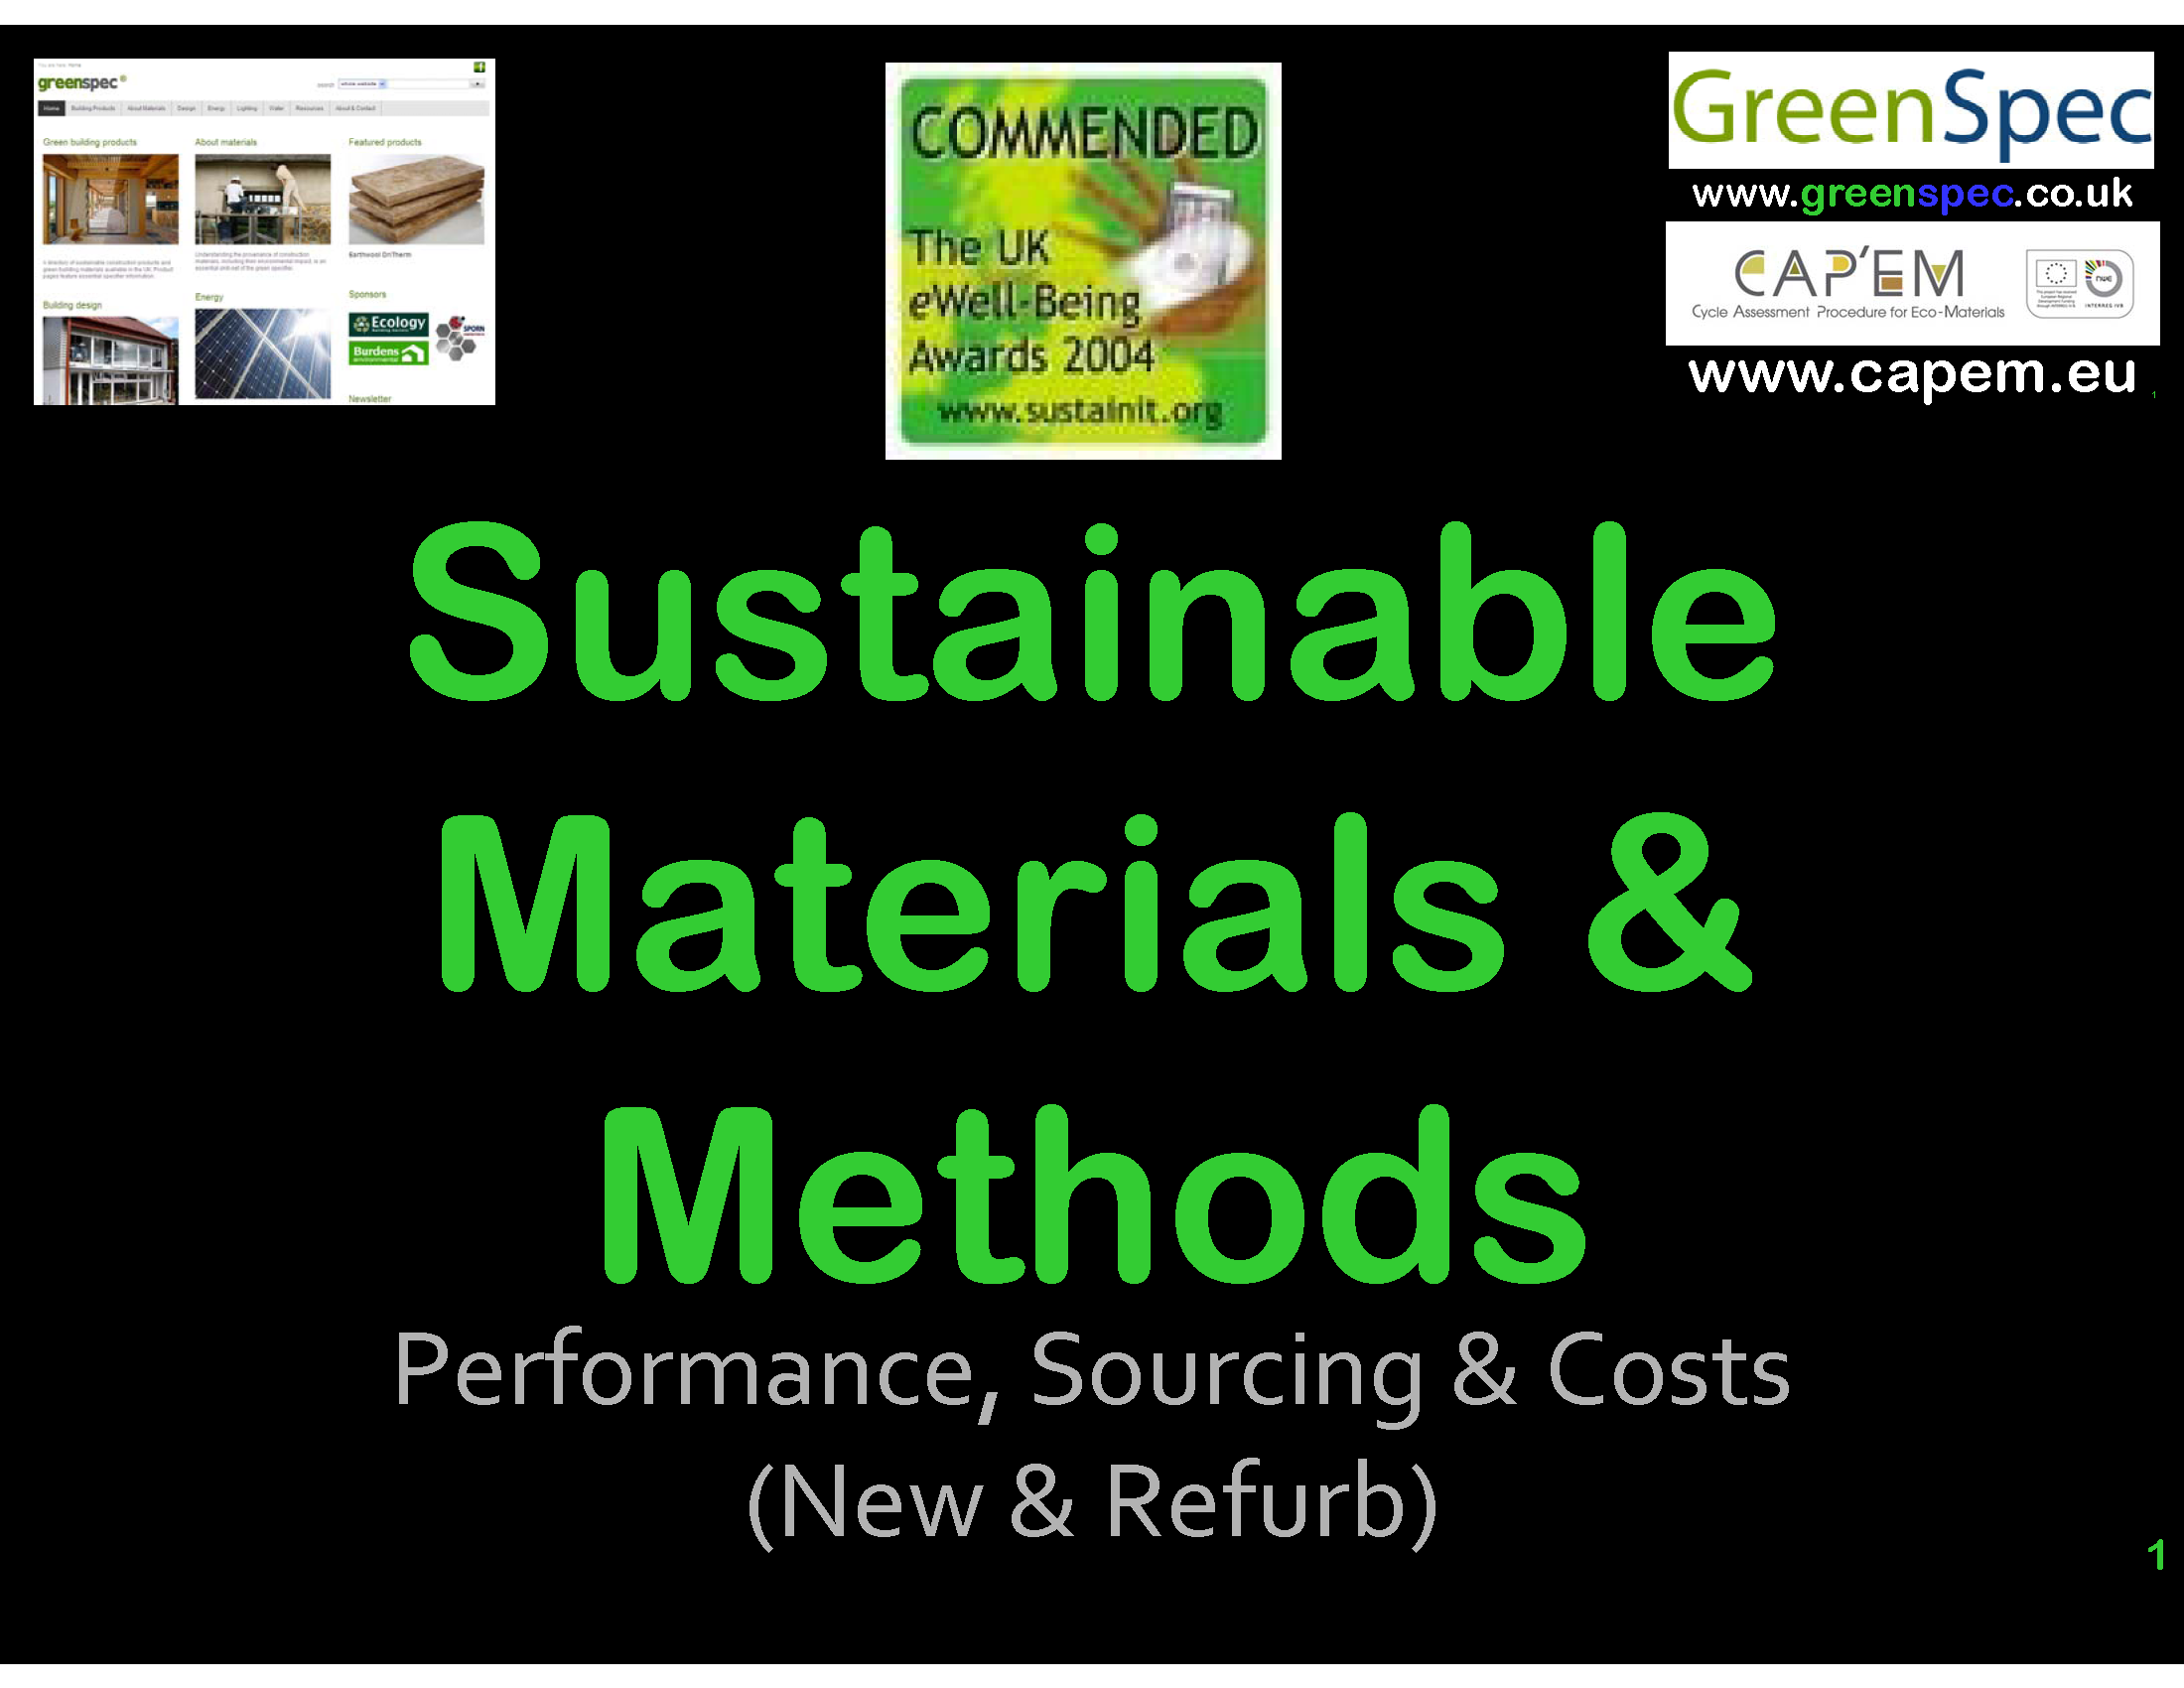 SustainableBuildingMaterials.png